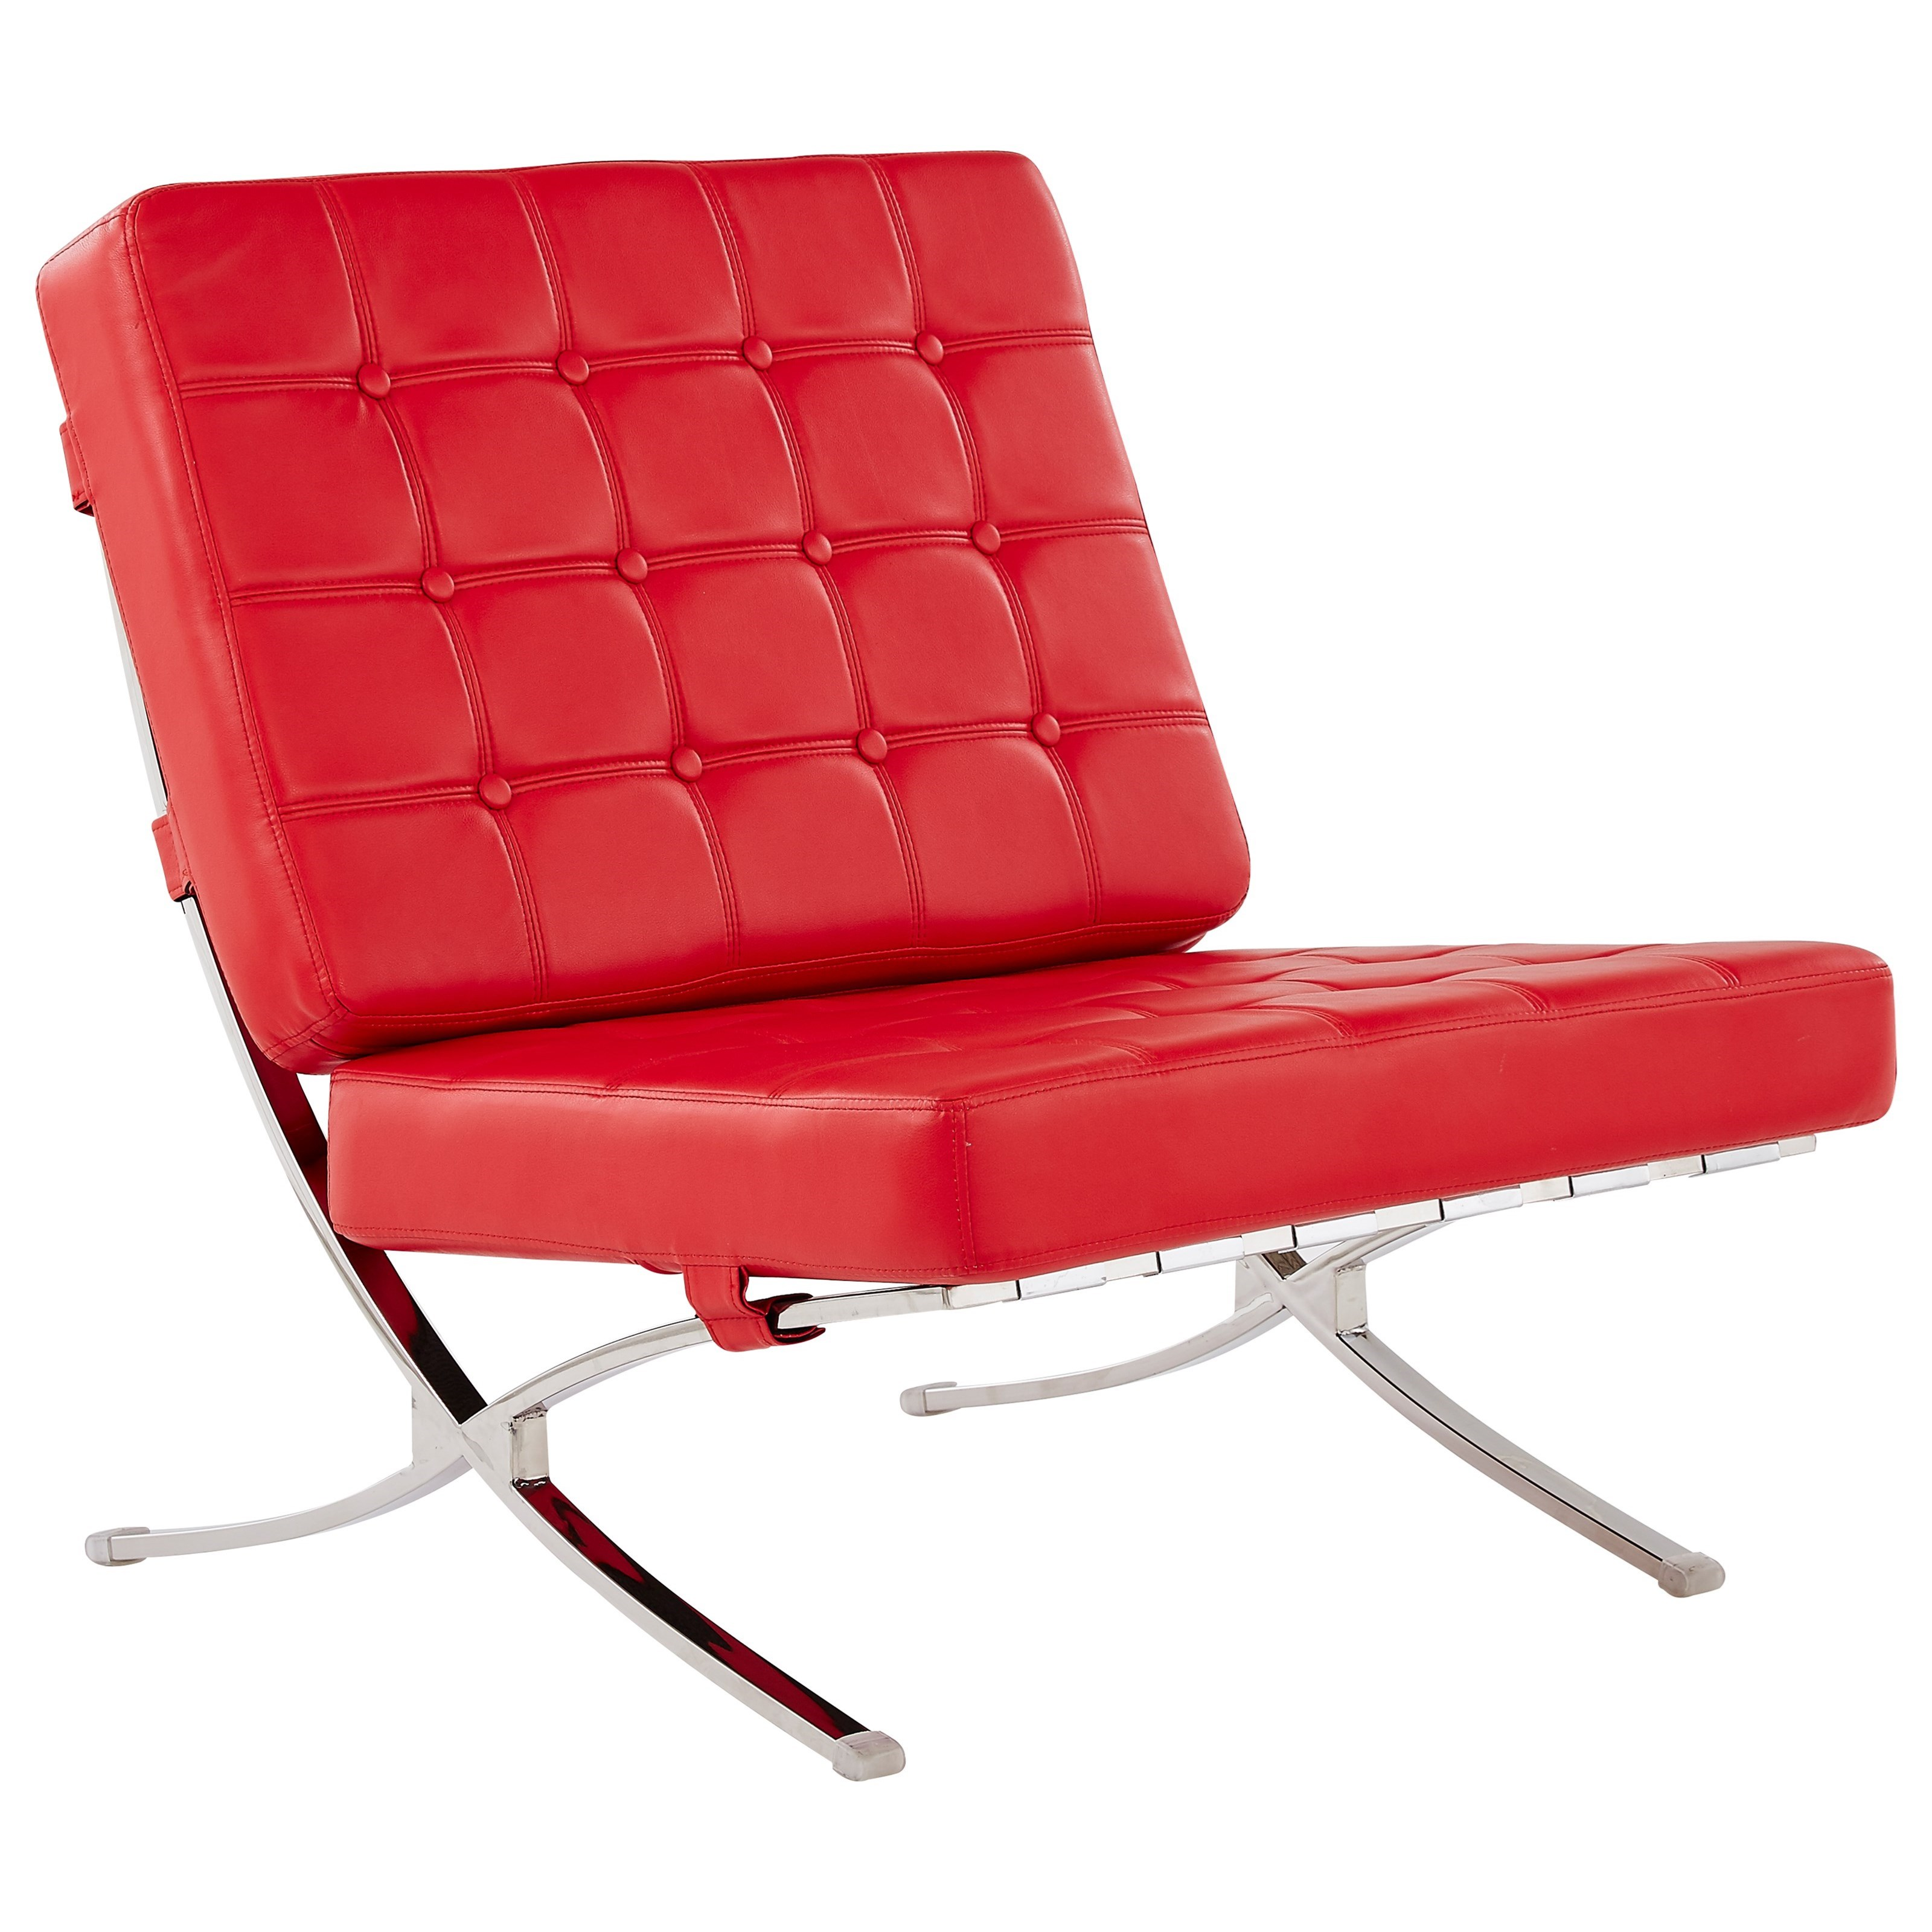 U6293 Tufted Chair With Chrome Frame by Global Furniture at Corner Furniture